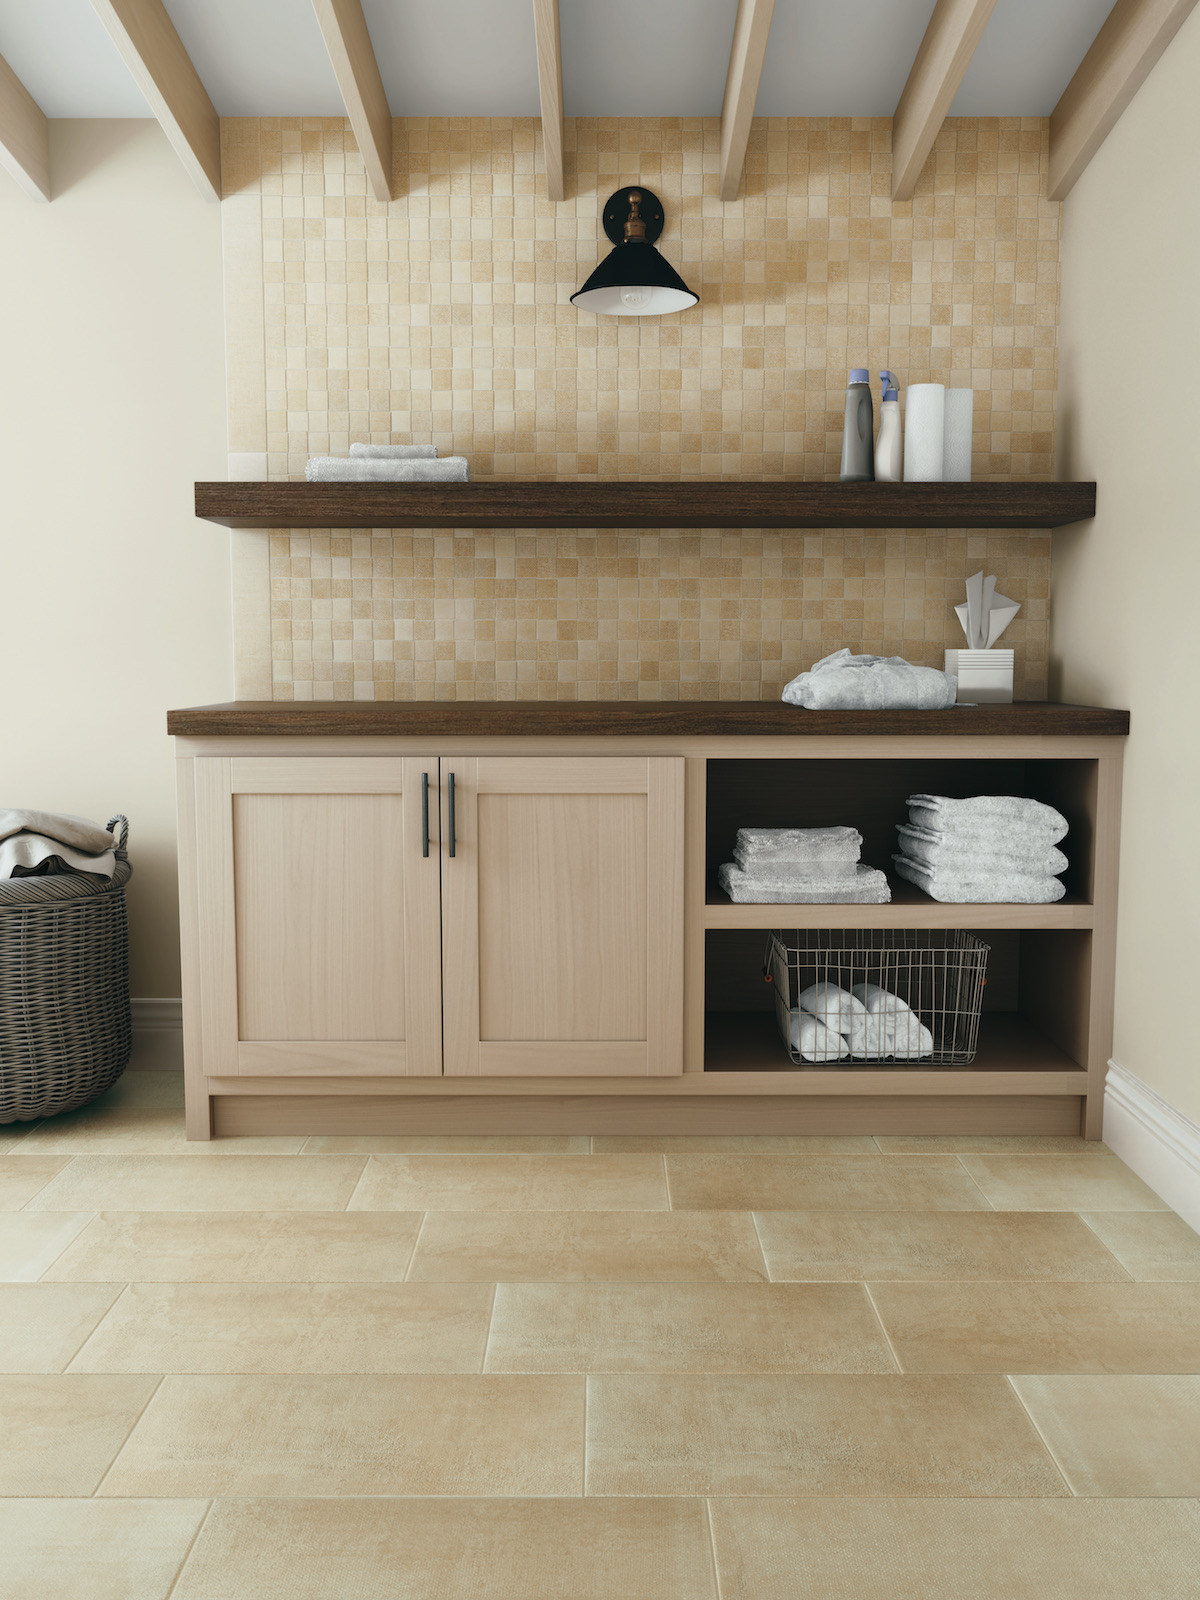 Crossville Evokes Boho Chic Style With New Tile